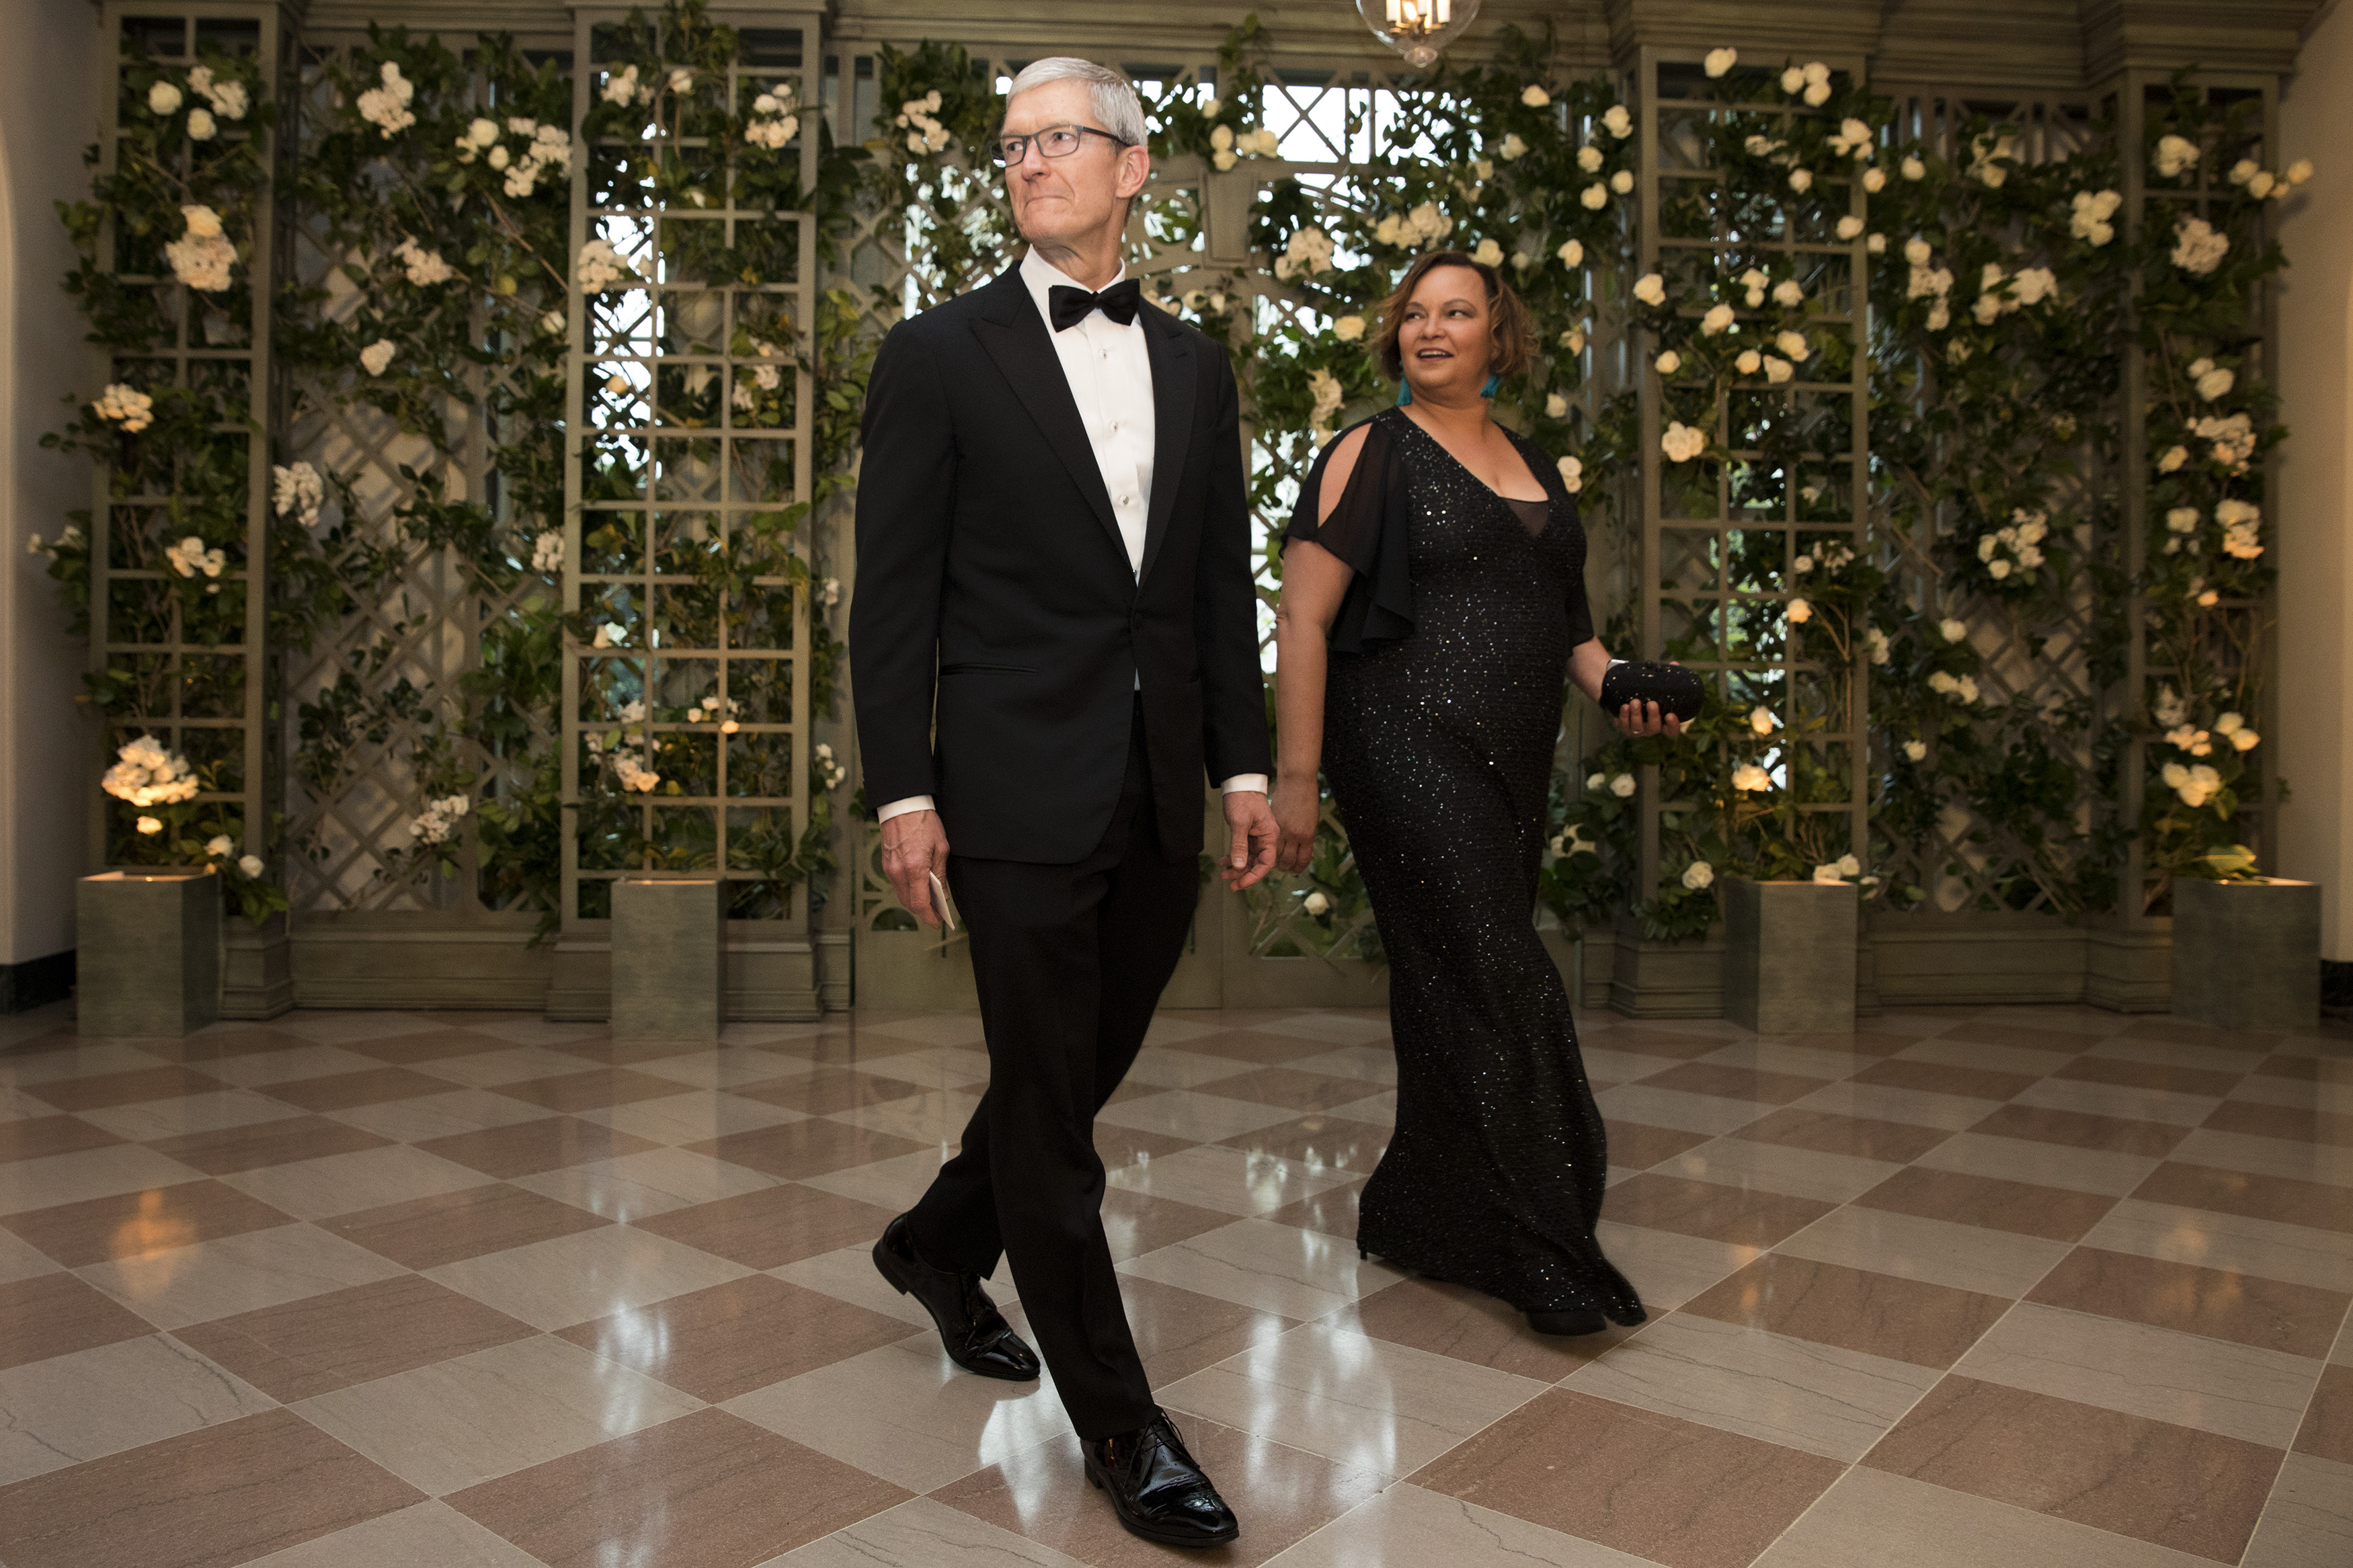 Apple CEO Tim Cook and Lisa Jackson arrive at a gala